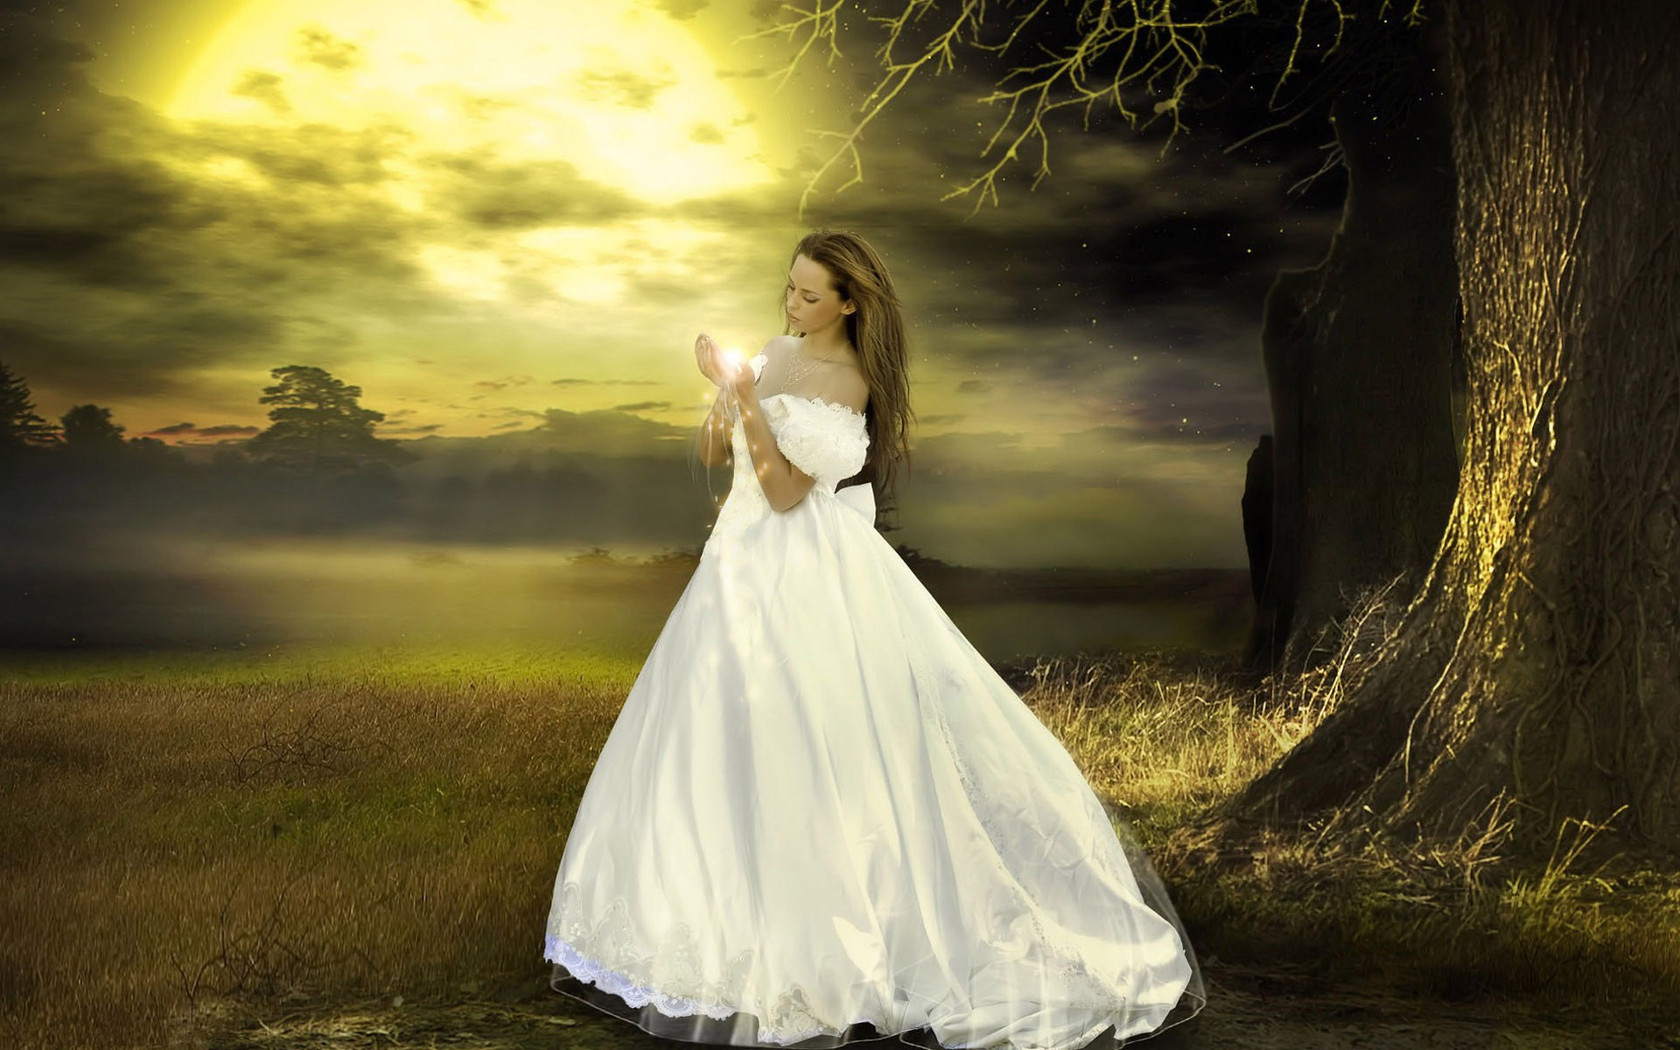 bride-in-the-forest-4960